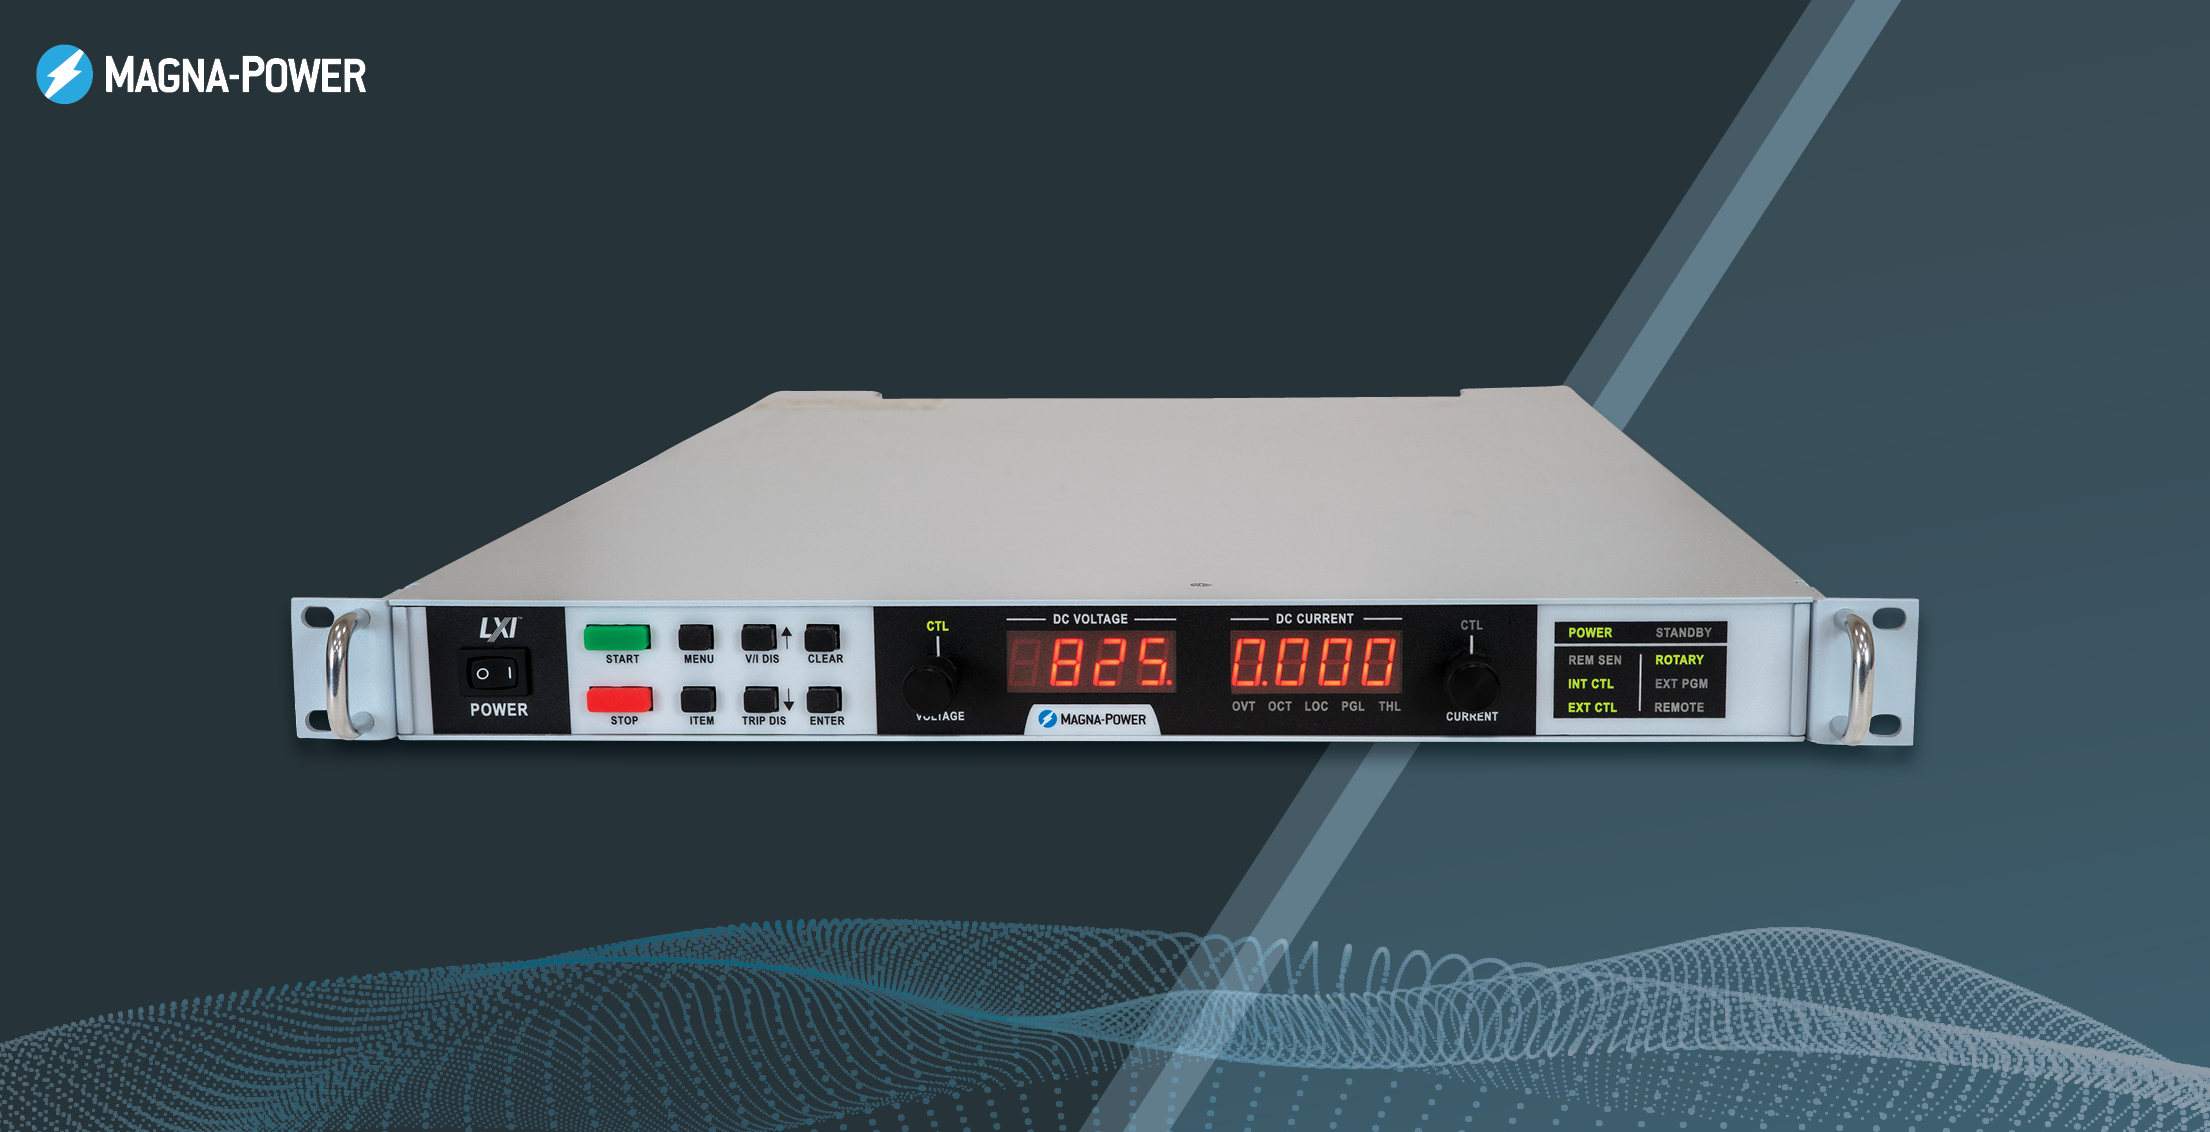 SL Series MagnaDC programmable DC power supply, now 10 kW in 1U. Icon